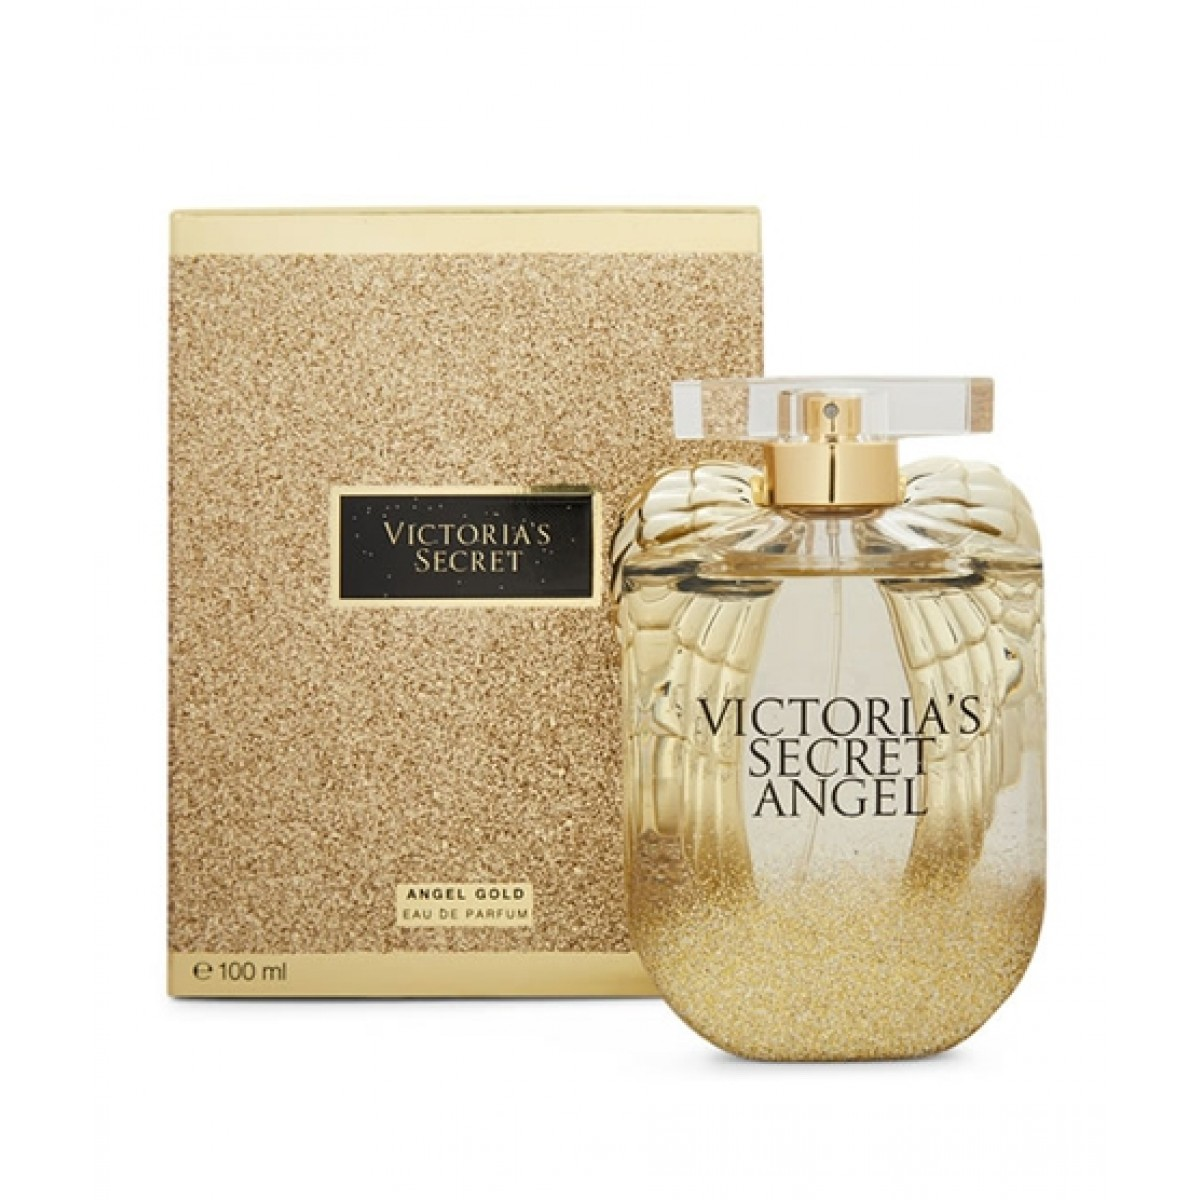 Angel Edp Gold Secret Women Perfume For Victoria 100ml ymnvO8wNP0